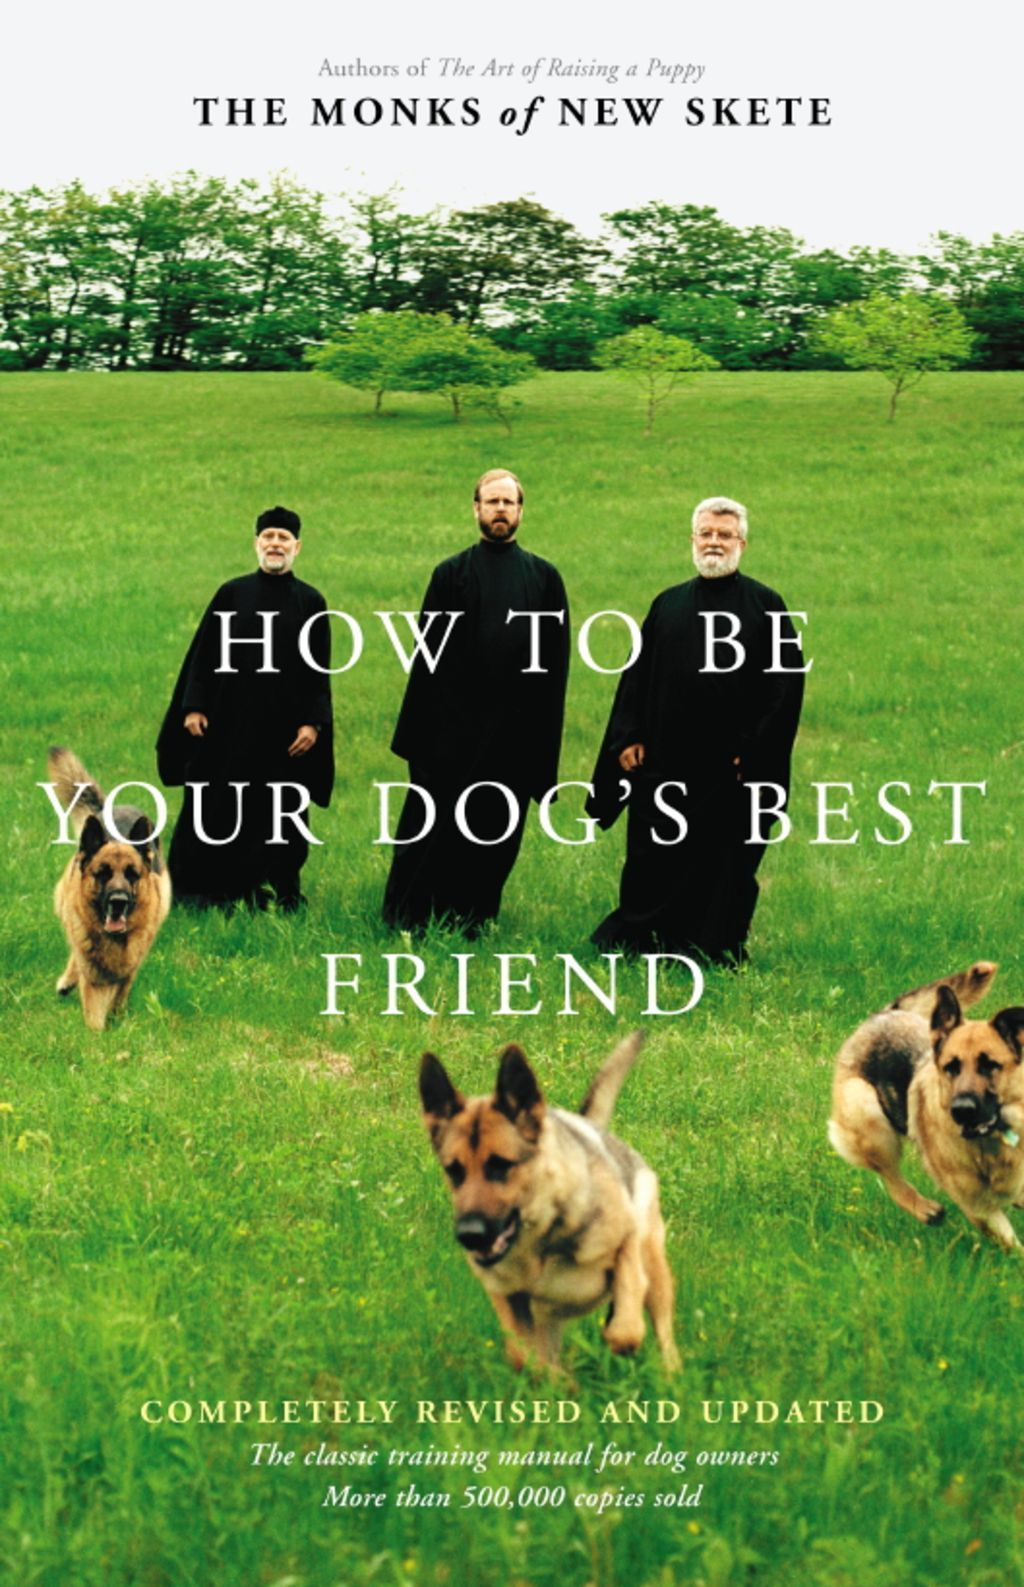 Pin On Dog Training Advice And Tips